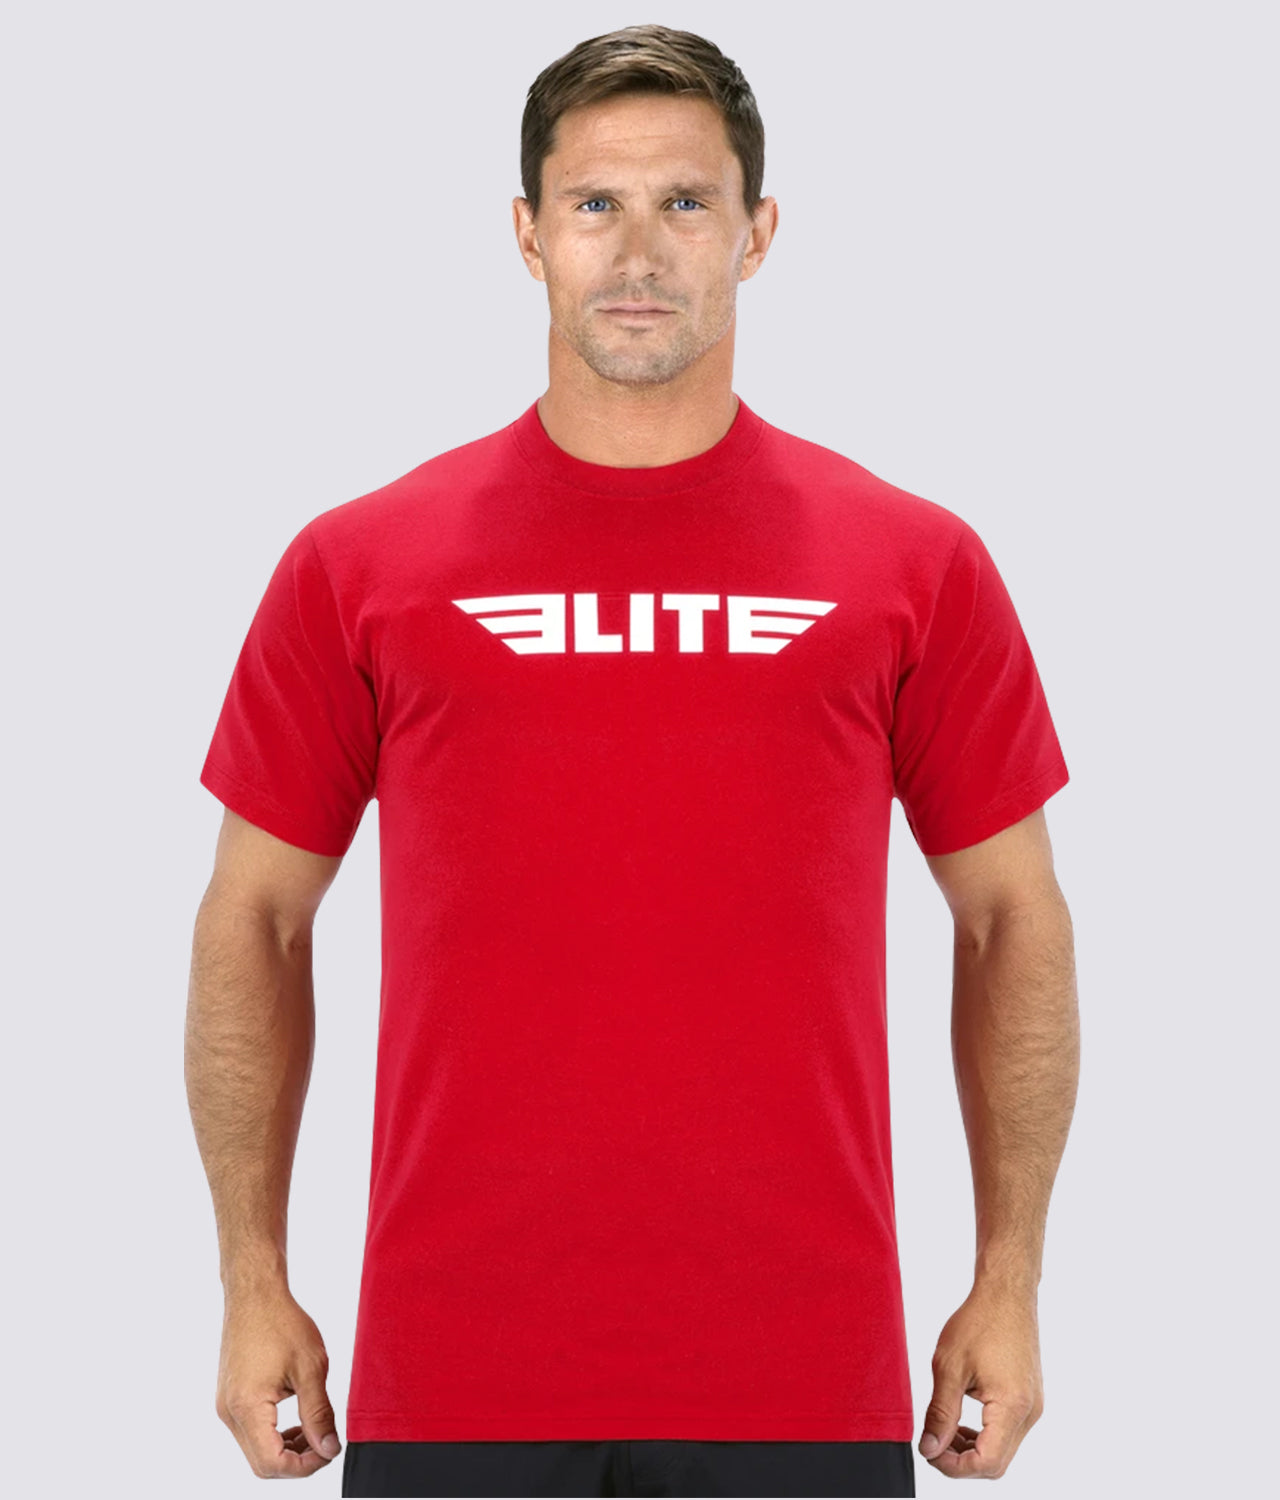 Elite Sports Antibacterial Red Cross Fit T-Shirts